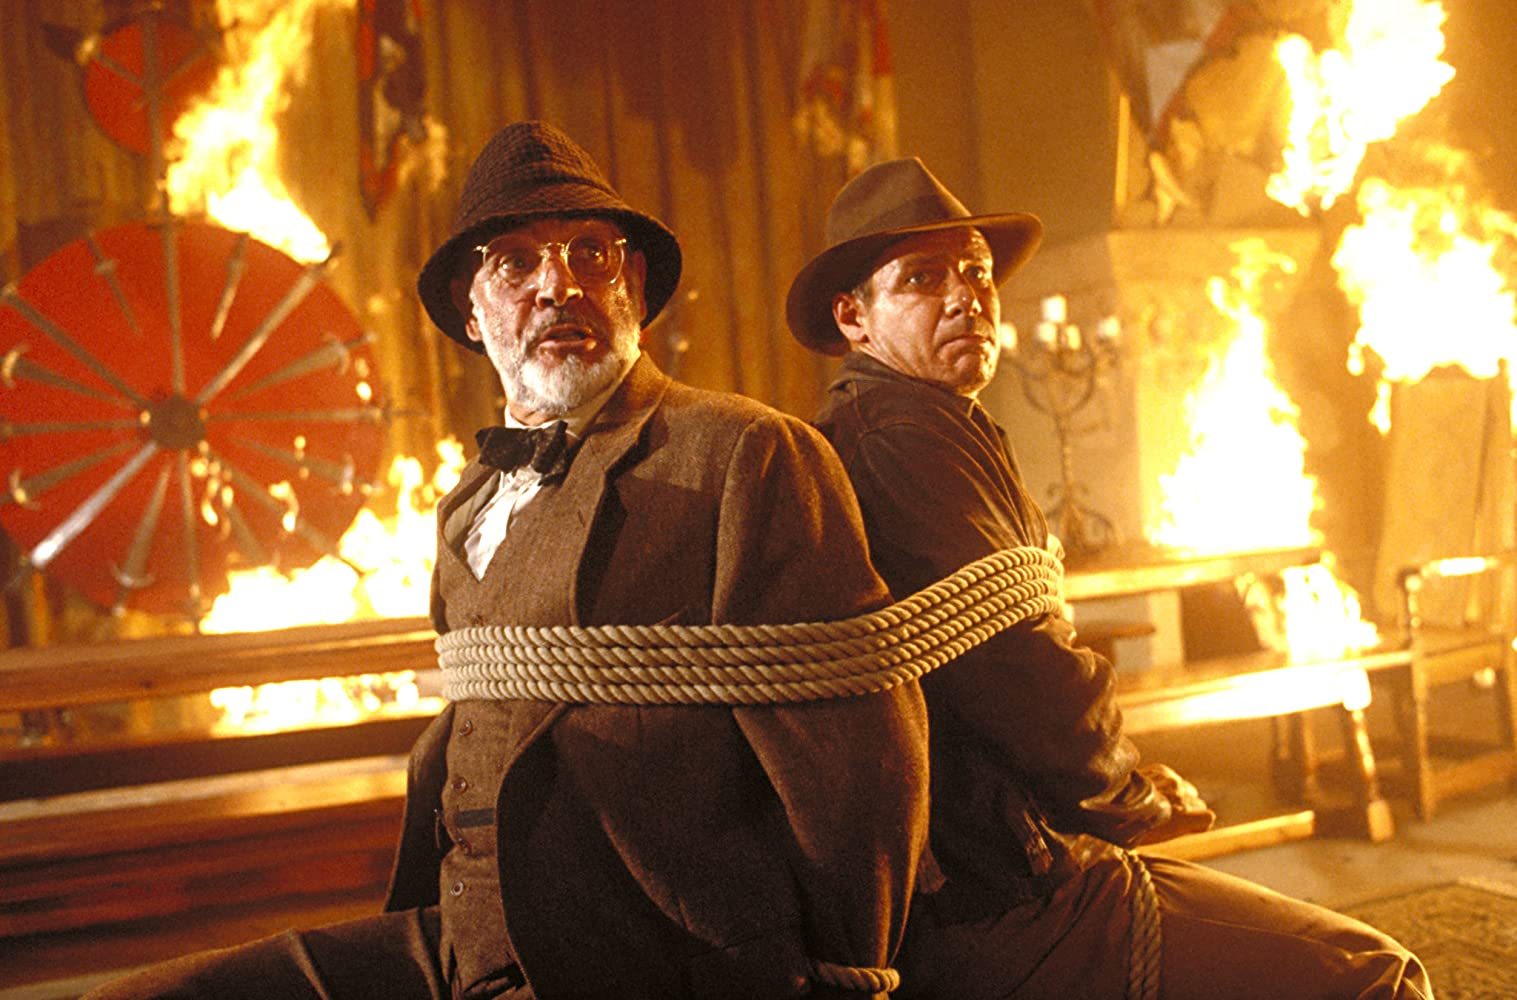 Sean Connery and Harrison Ford in Indiana Jones and the Last Crusade (1989)